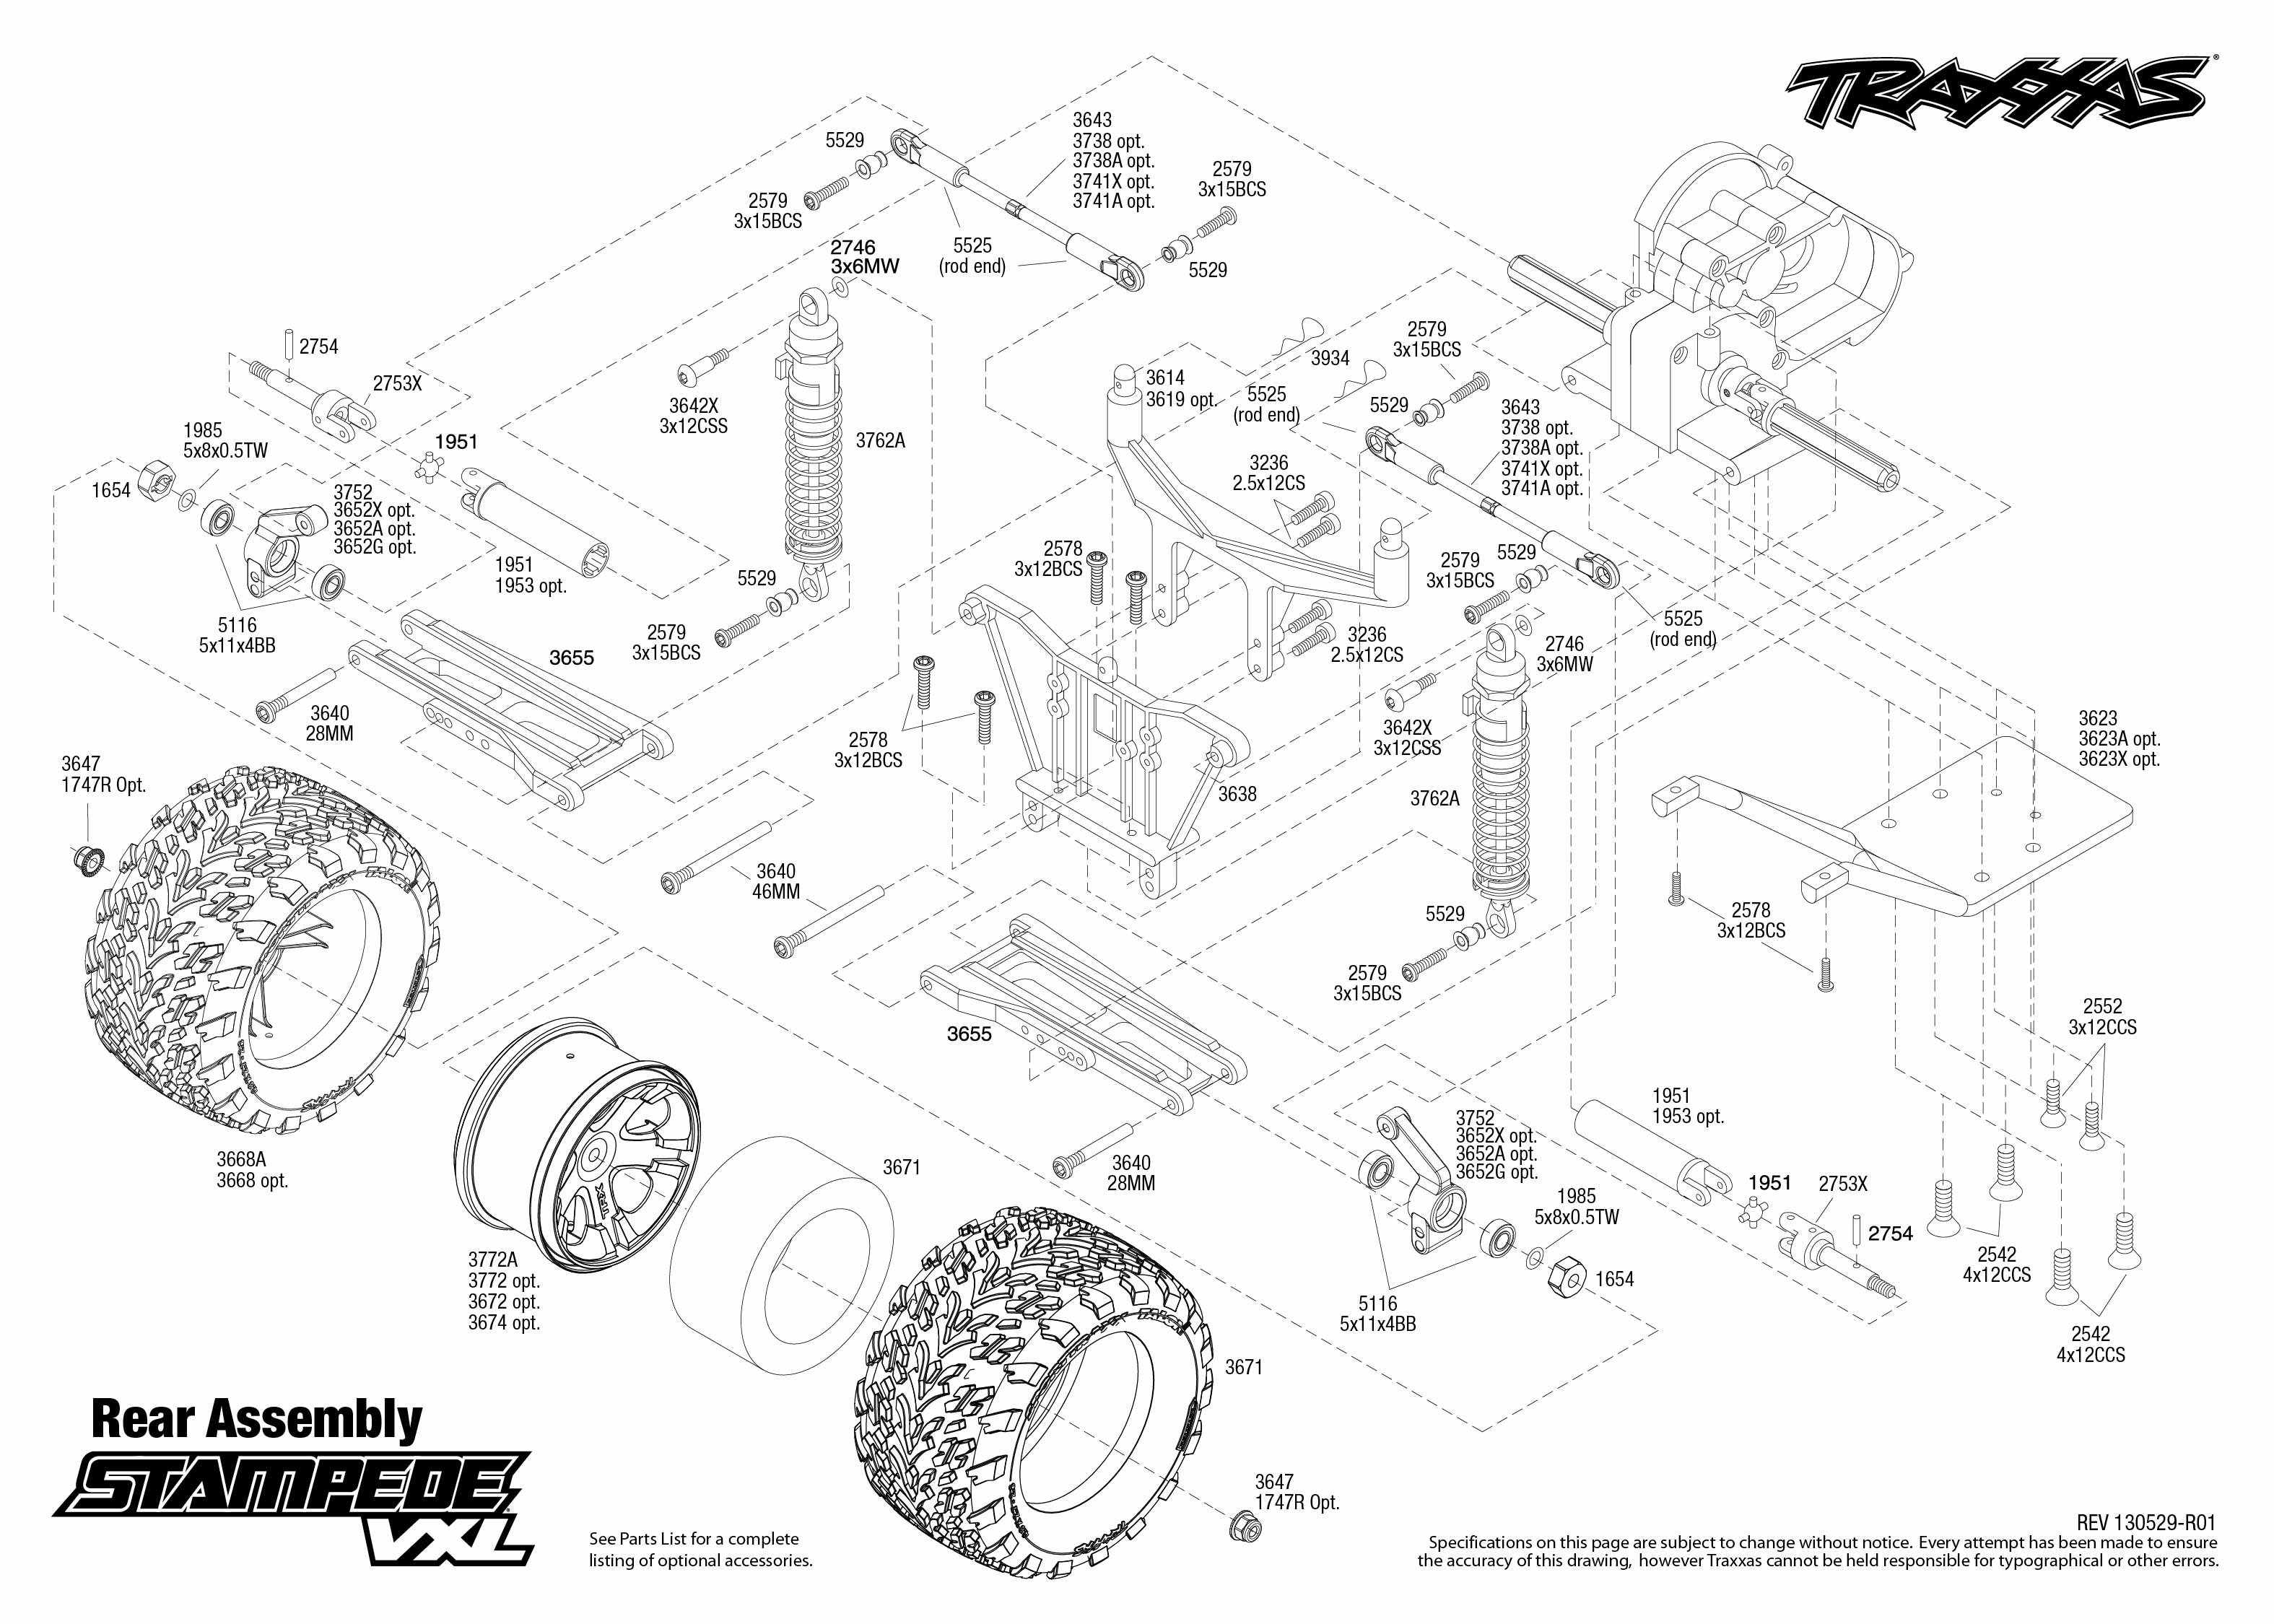 Traxxas Slash 2wd Diagram